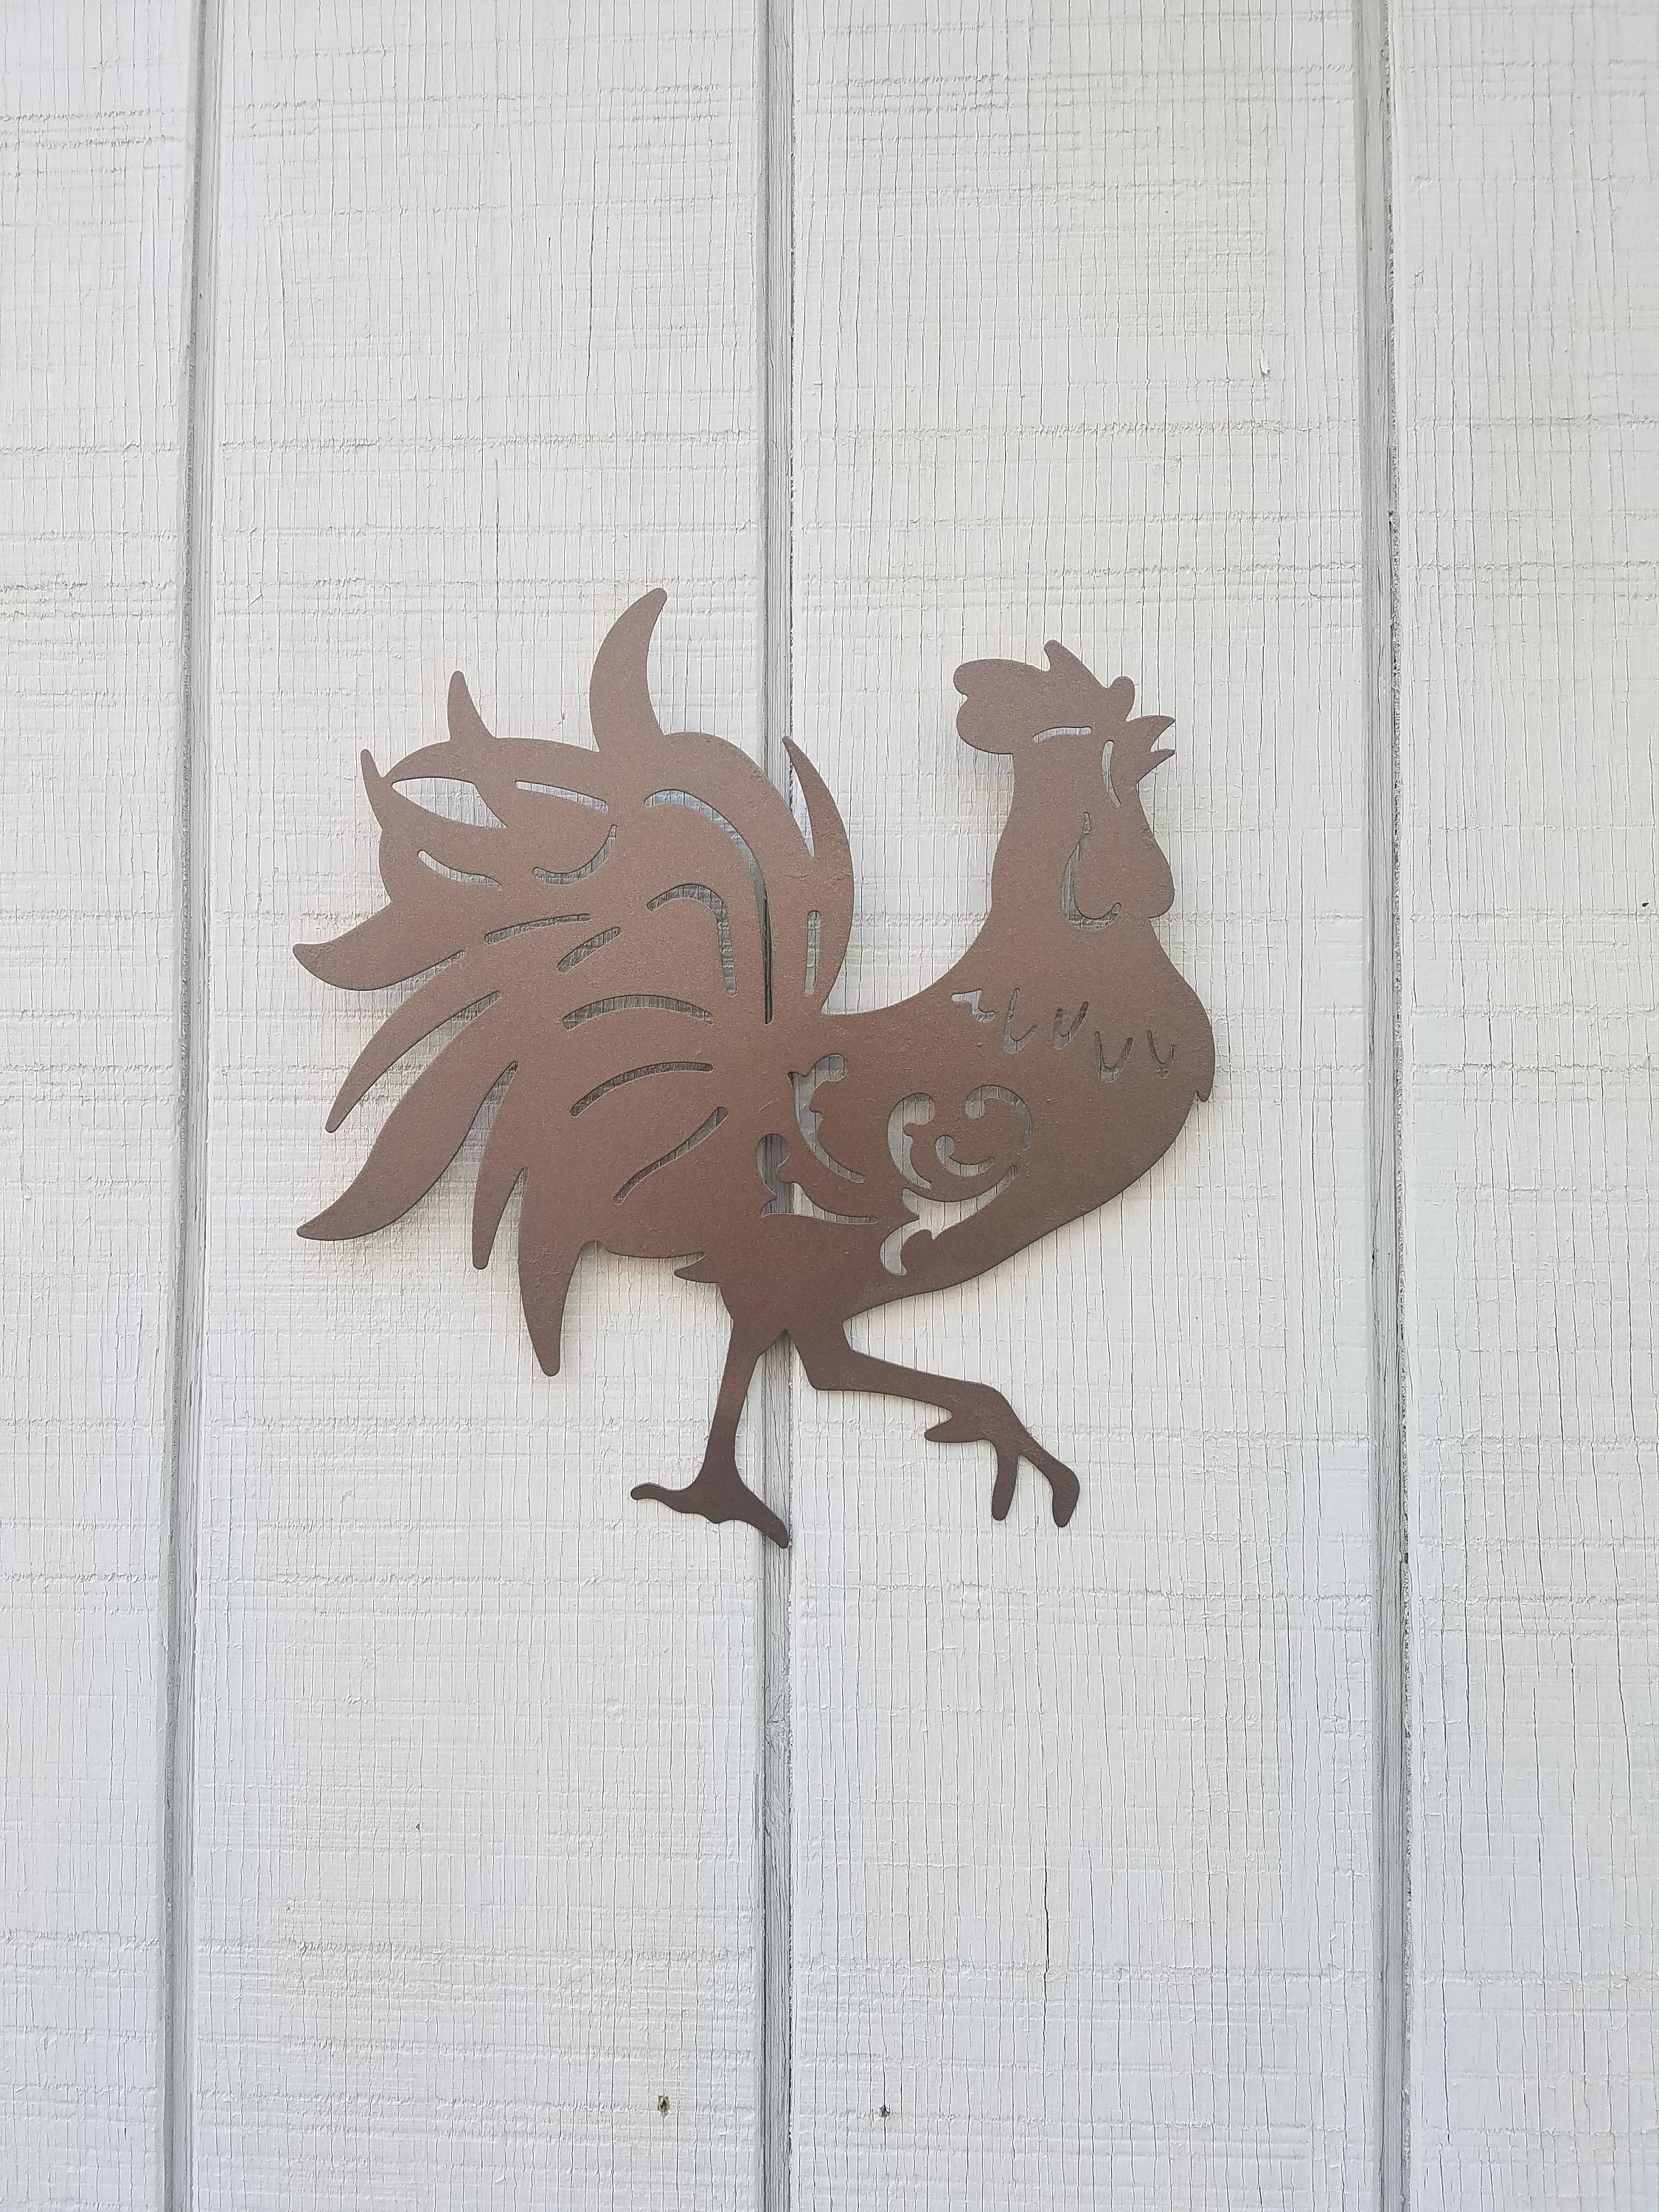 Rooster Wall Art / Rooster Decor / Kitchen Decor / Chicken In Most Recently Released Metal Rooster Wall Decor (Gallery 23 of 25)